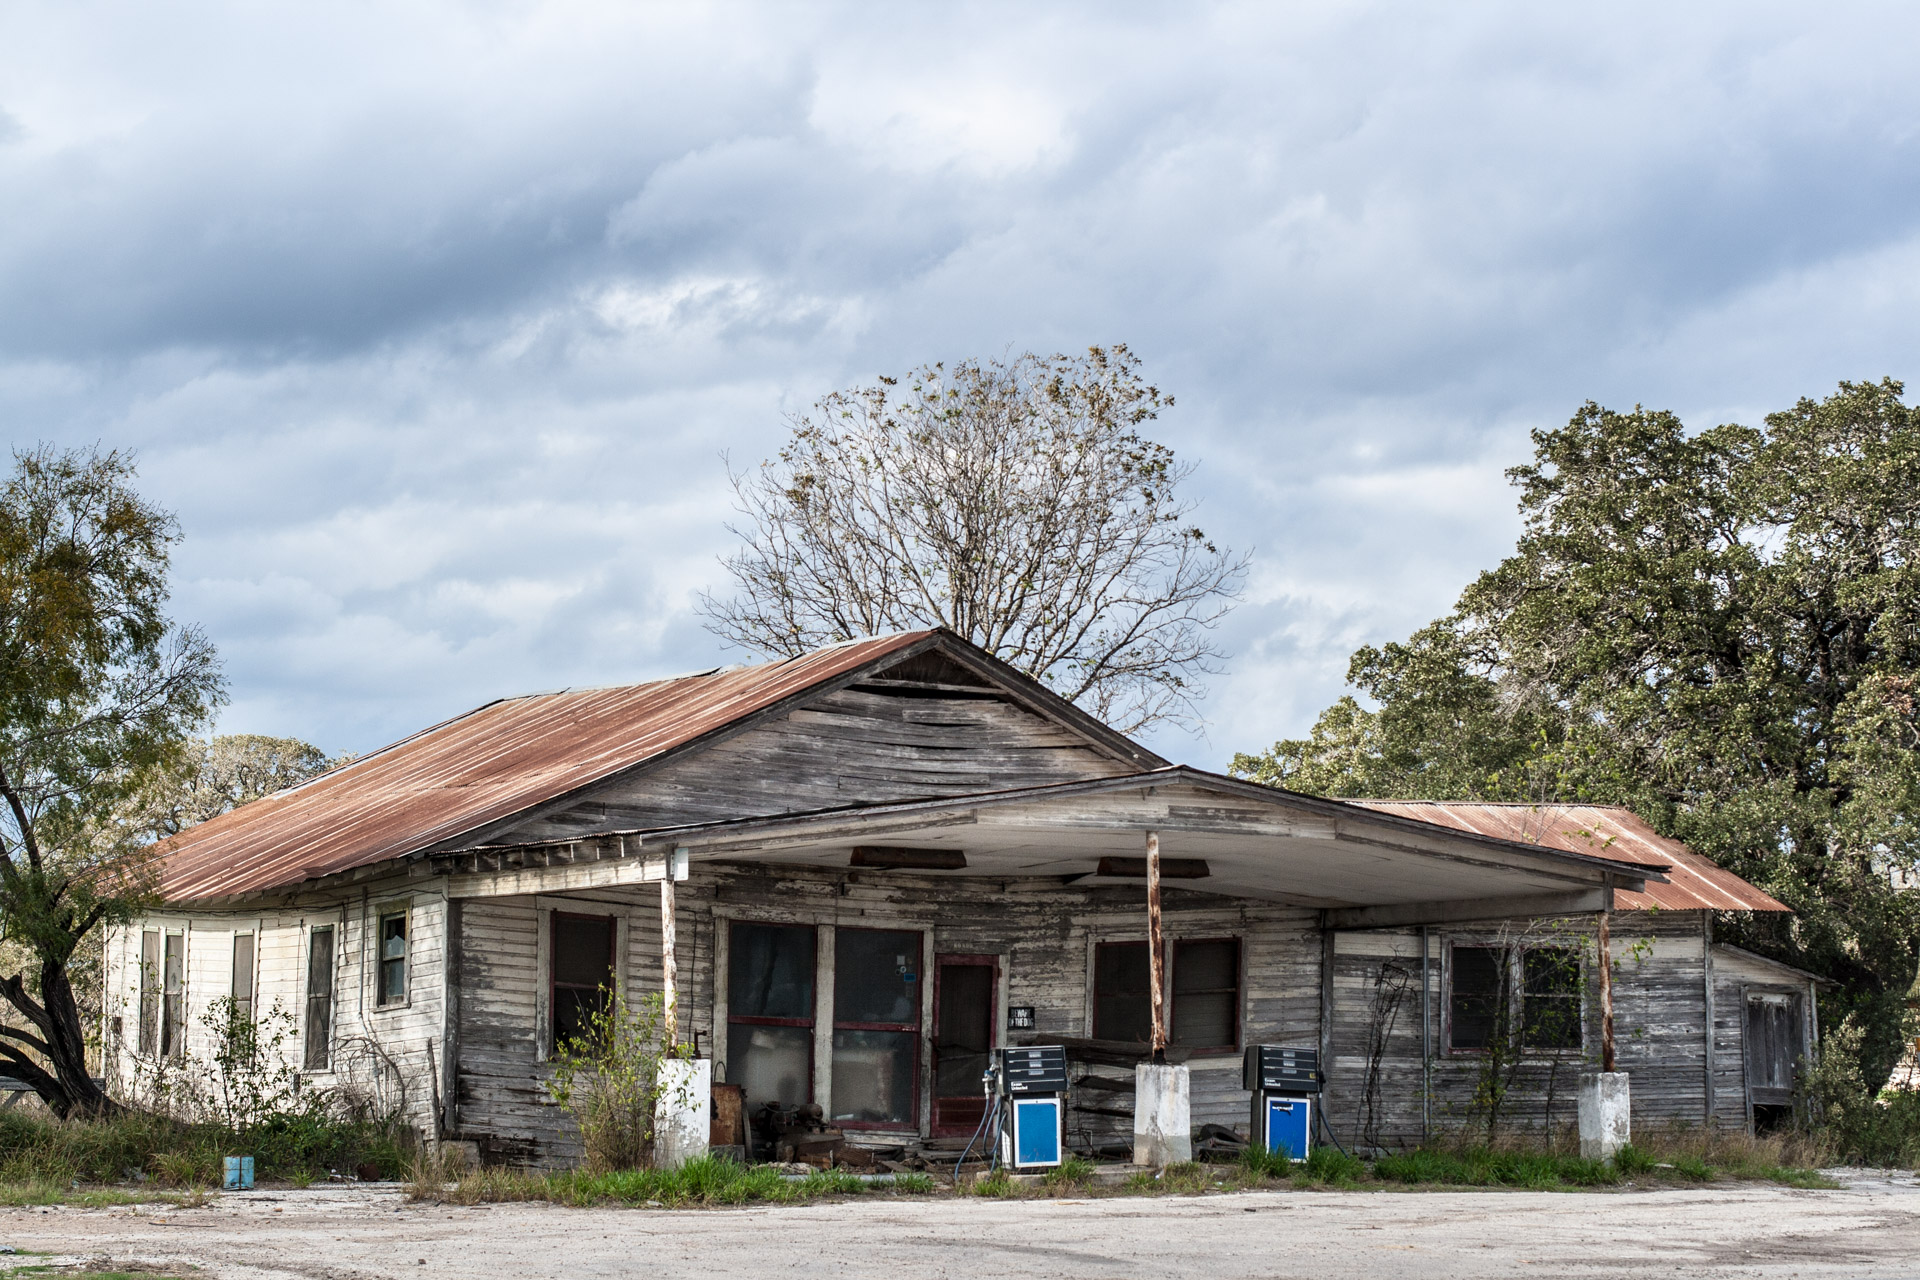 Helena, Texas - An Uneven Gas Station (side far)